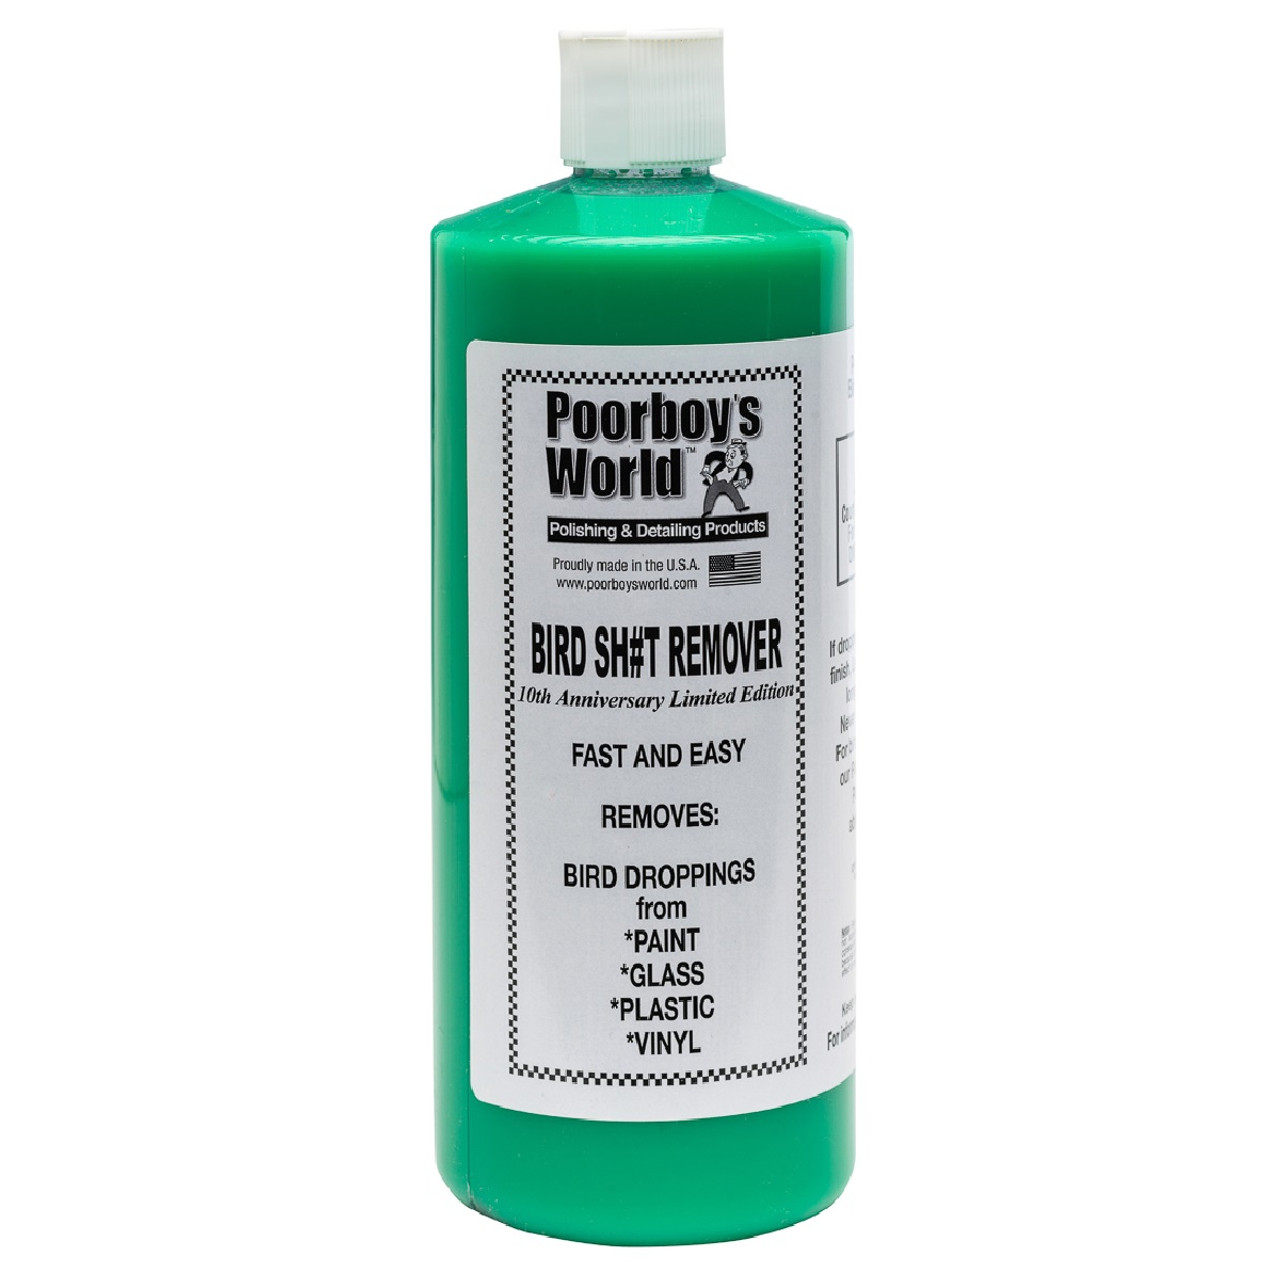 Poorboy's World Bird Sh#t Remover 32oz Refill